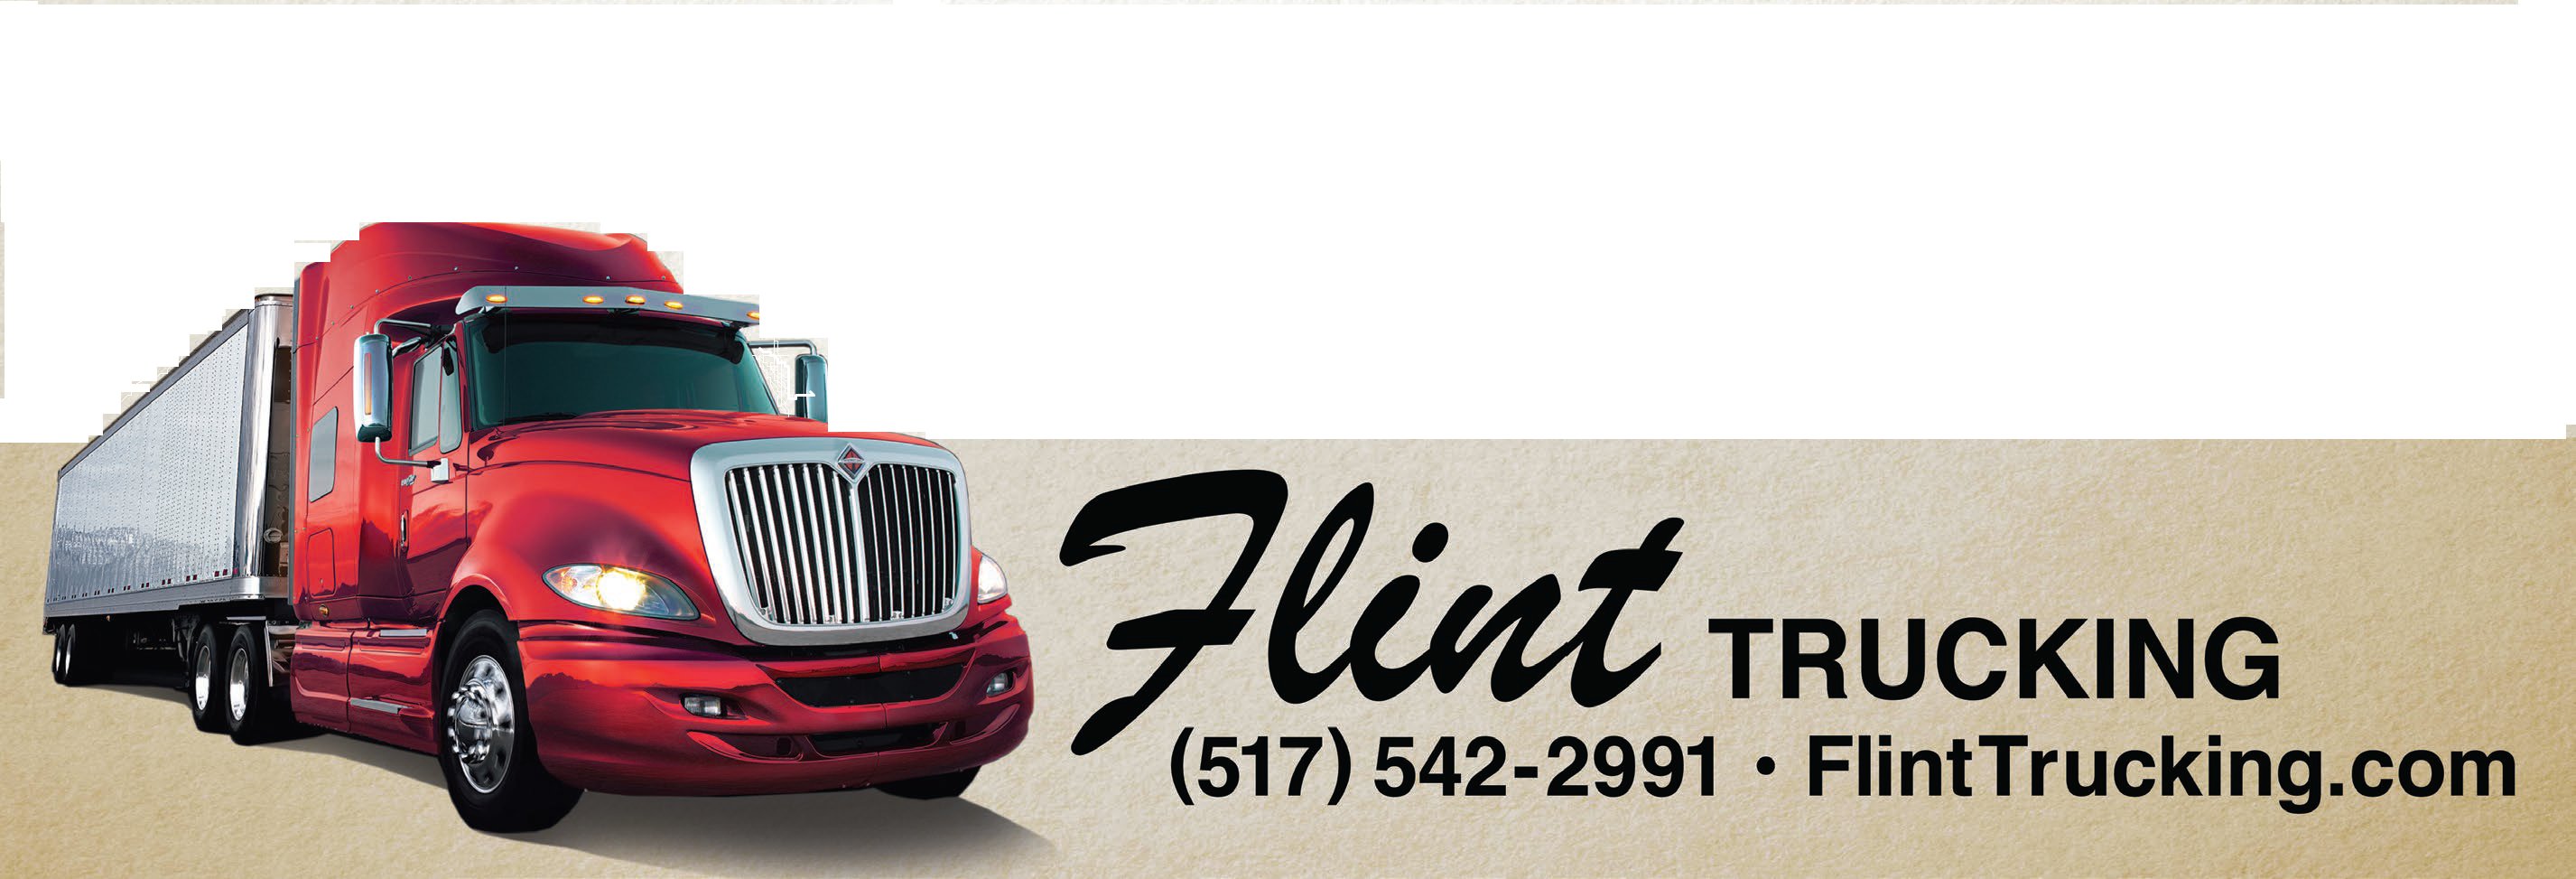 Flint Trucking Logo - Semi (2)